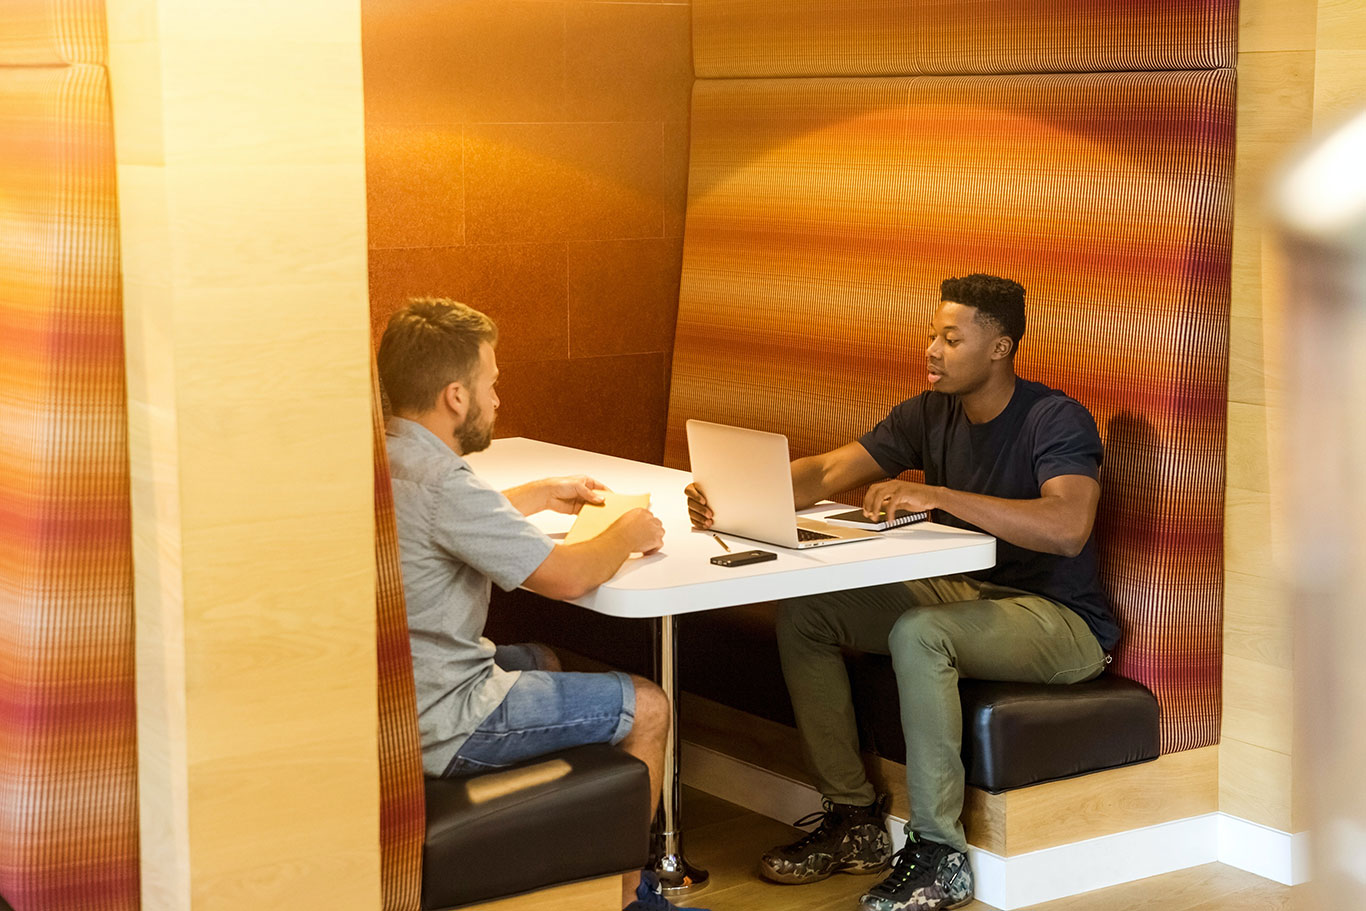 Two men sit in a booth discussing technology